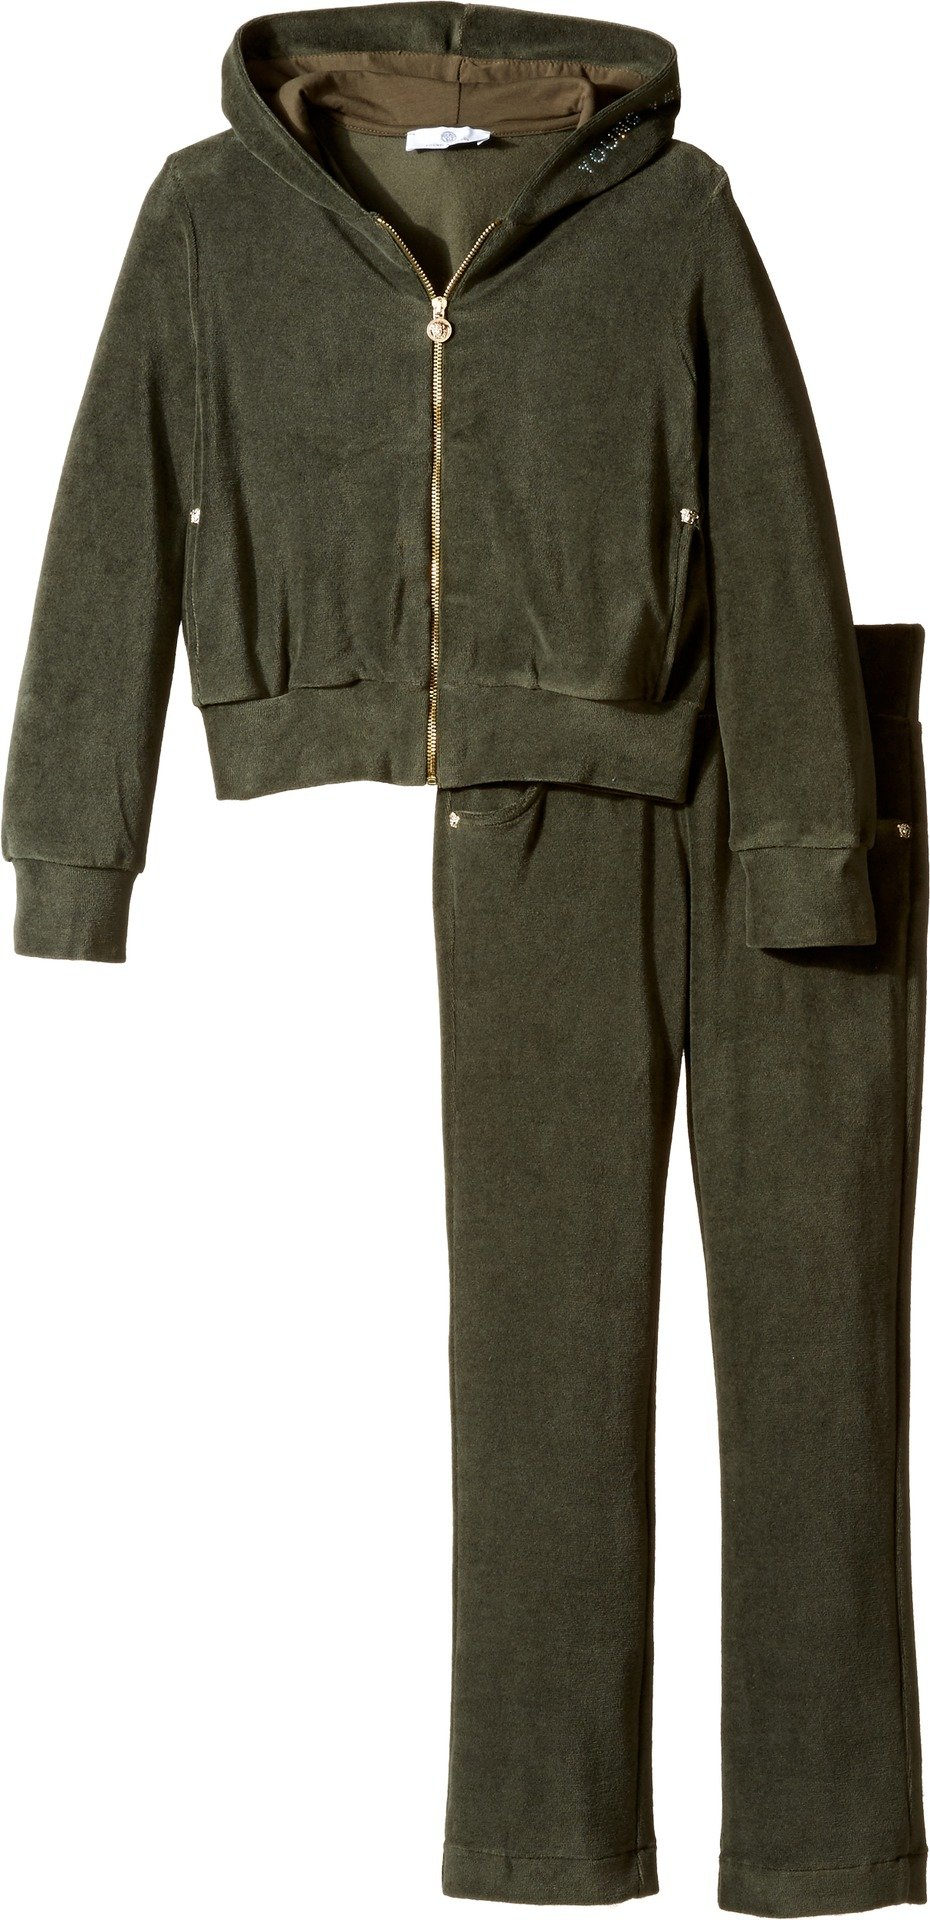 Versace Kids Girl's Velour Track Suit w/ Embellished Medusa Logo (Big Kids) Green/Navy Suit by Versace